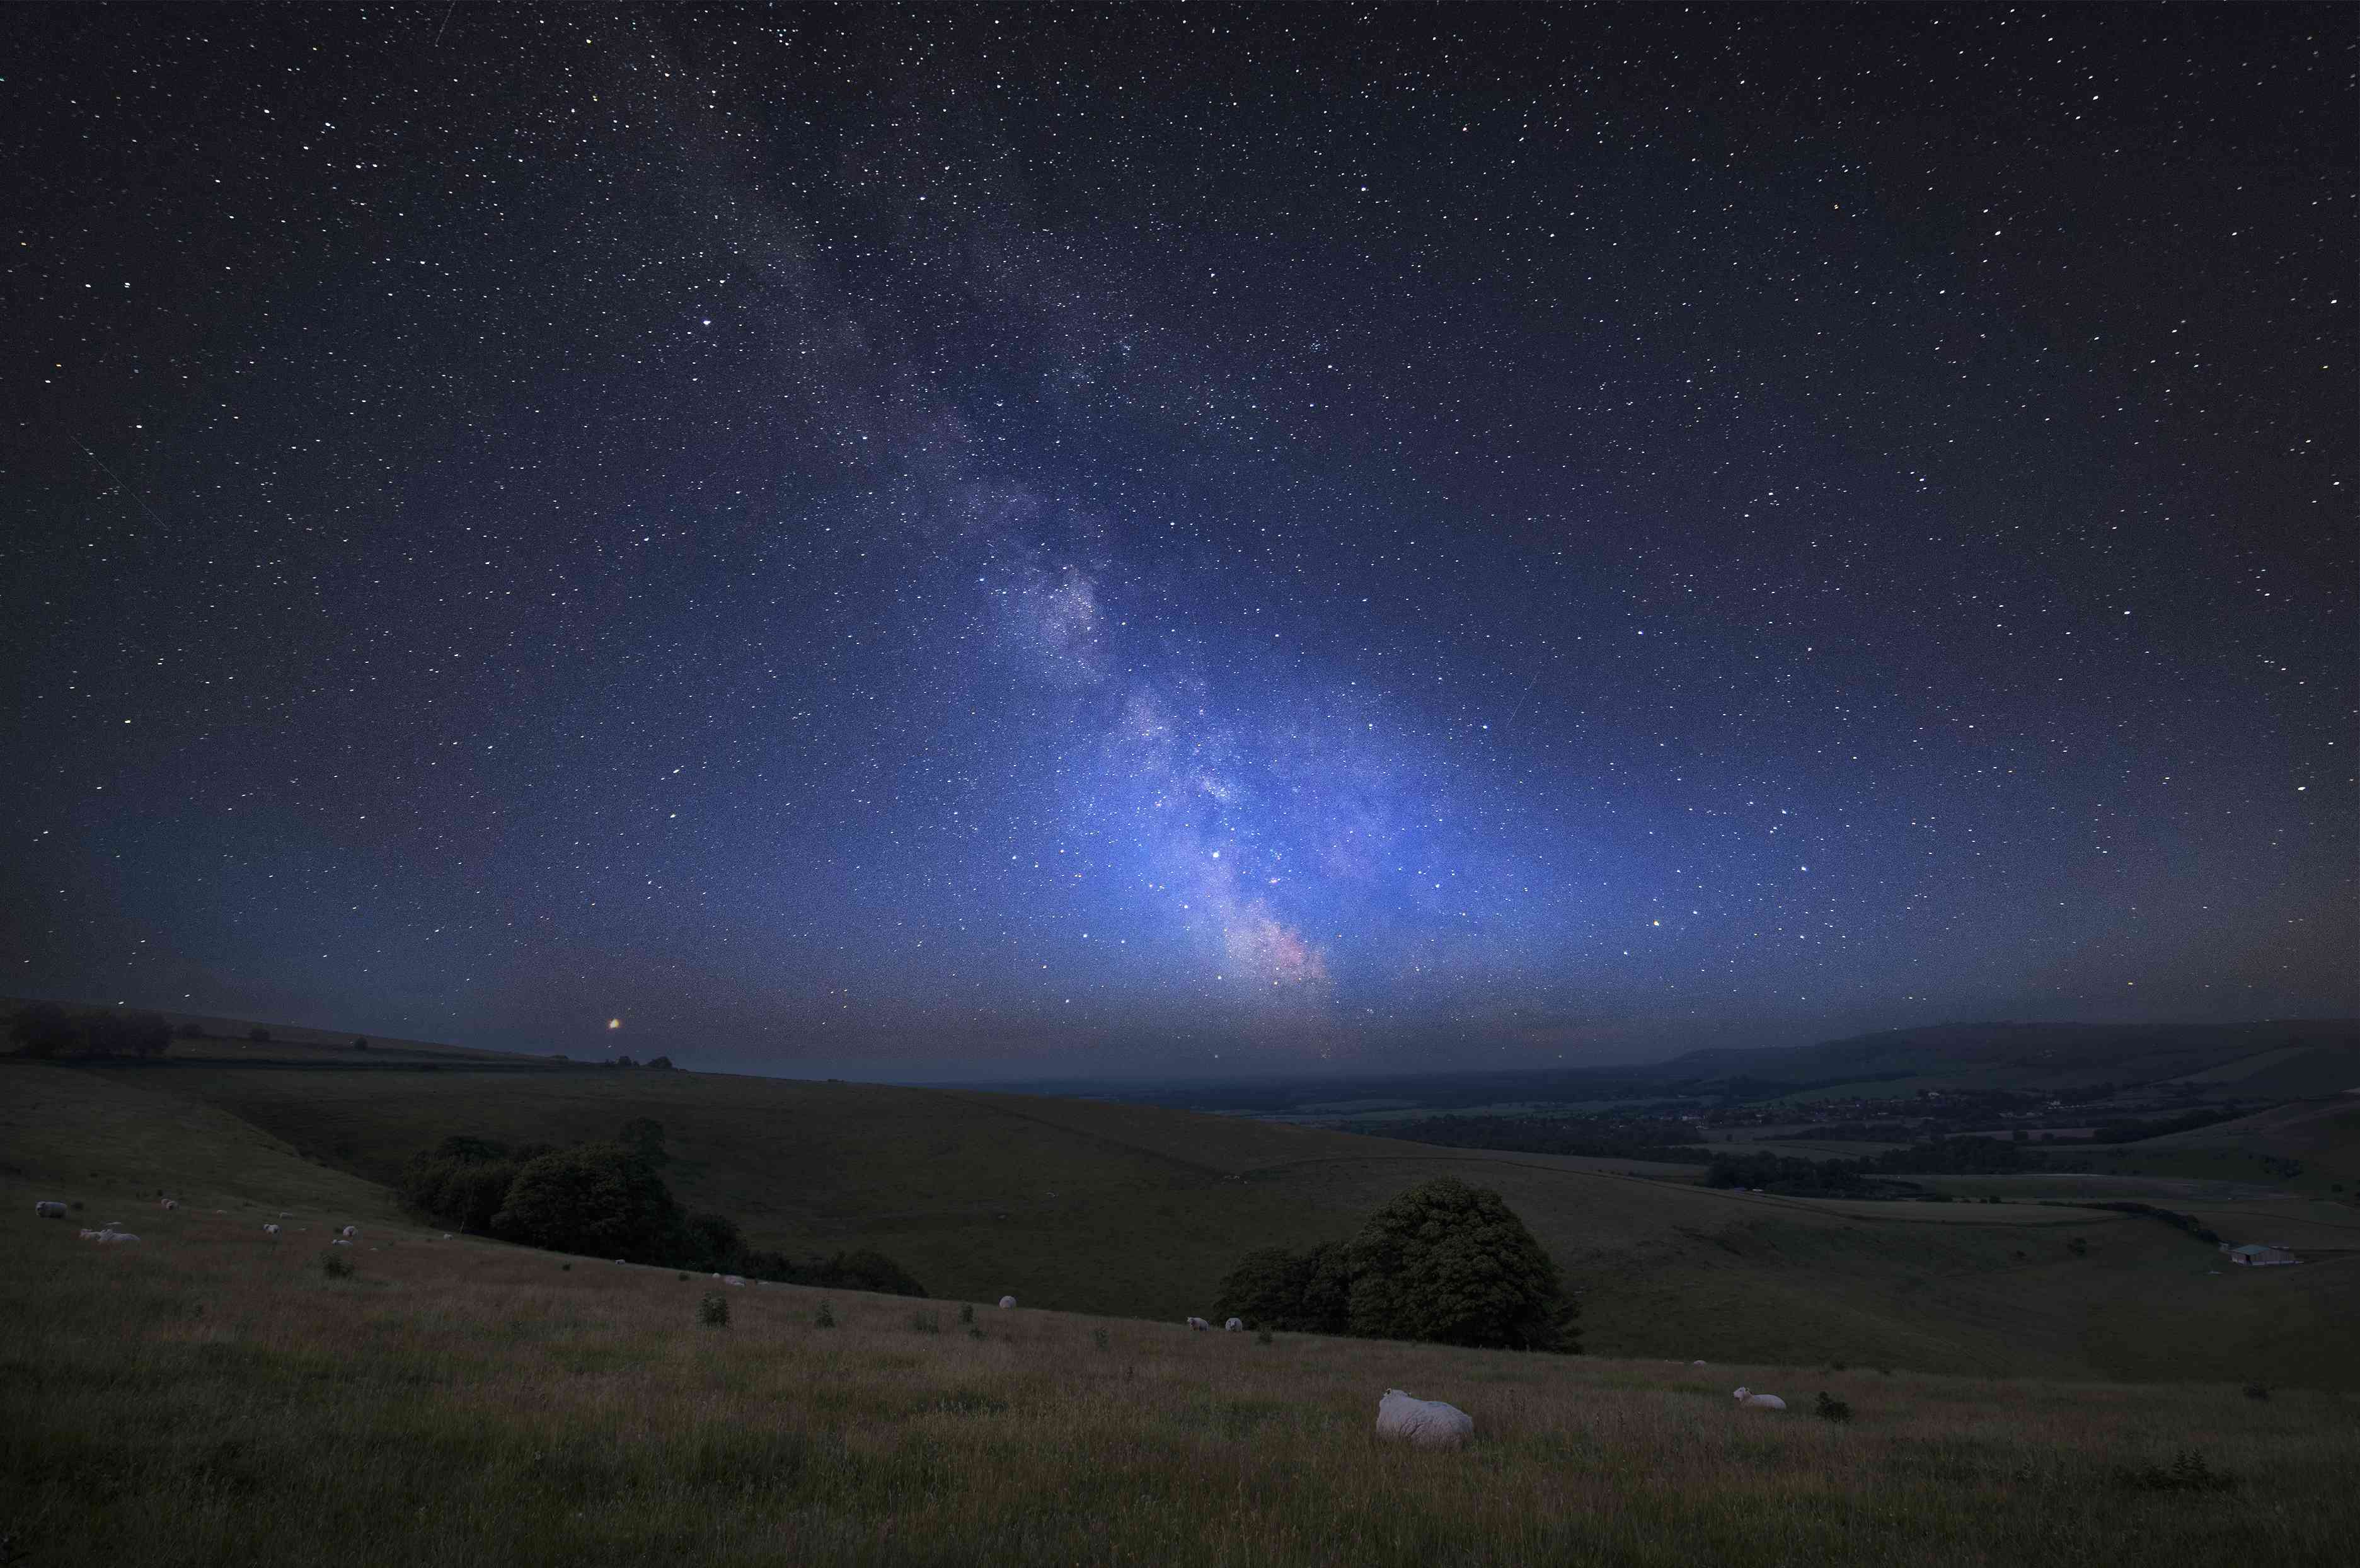 Vibrant Milky Way over grassy hillsides in South Downs